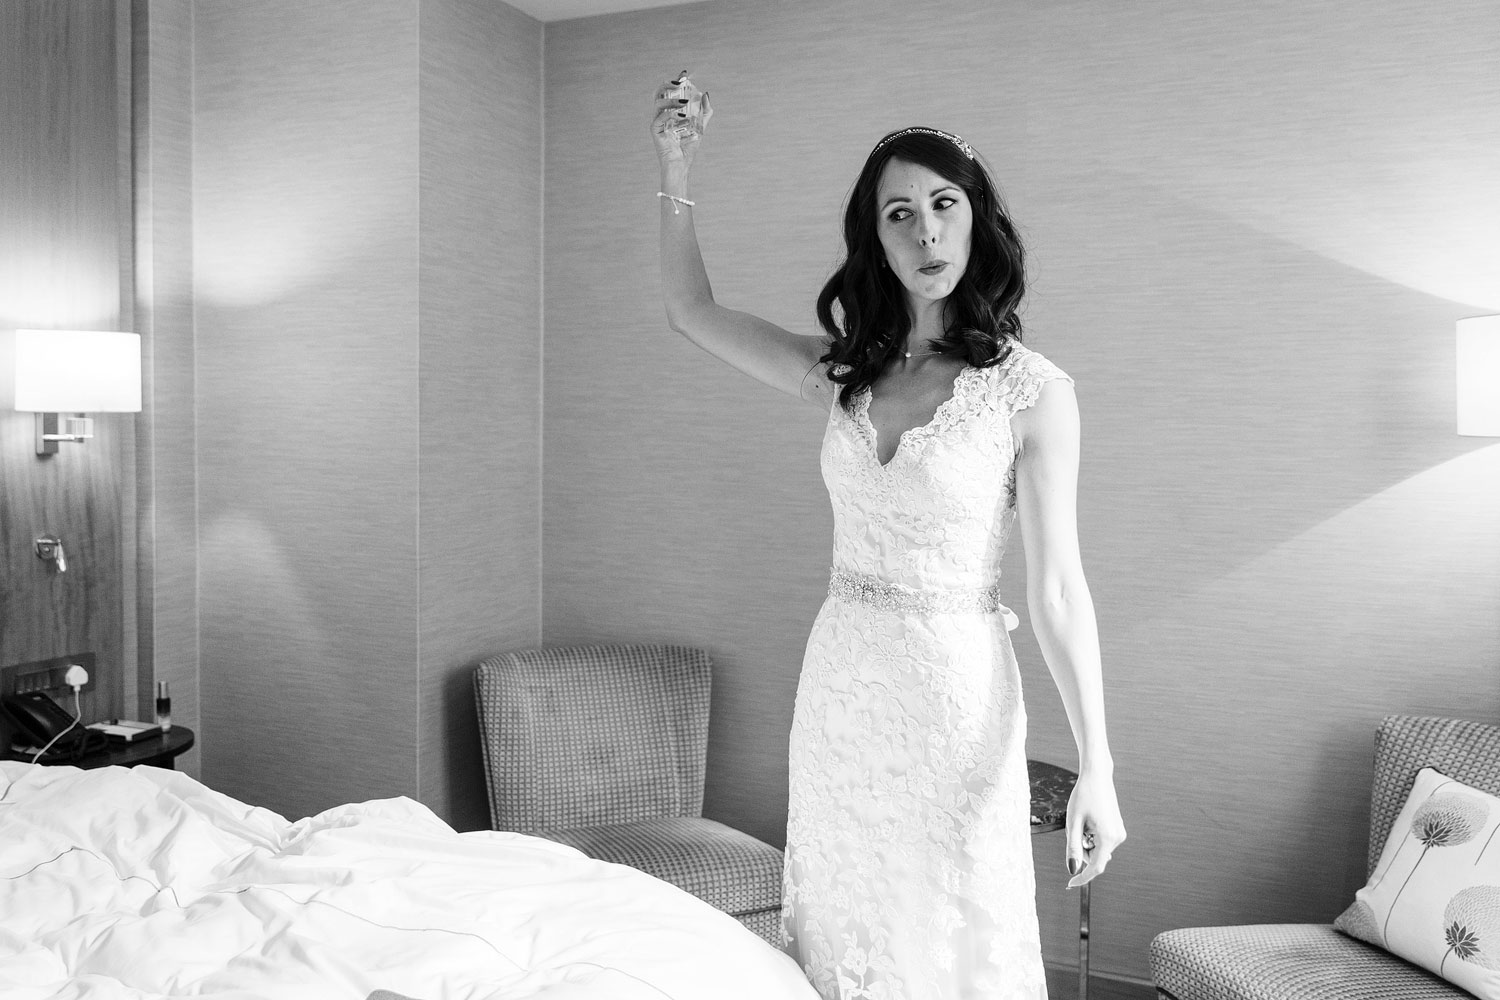 The bride sprays herself with perfume before her wedding at the Conrad St James hotel in London